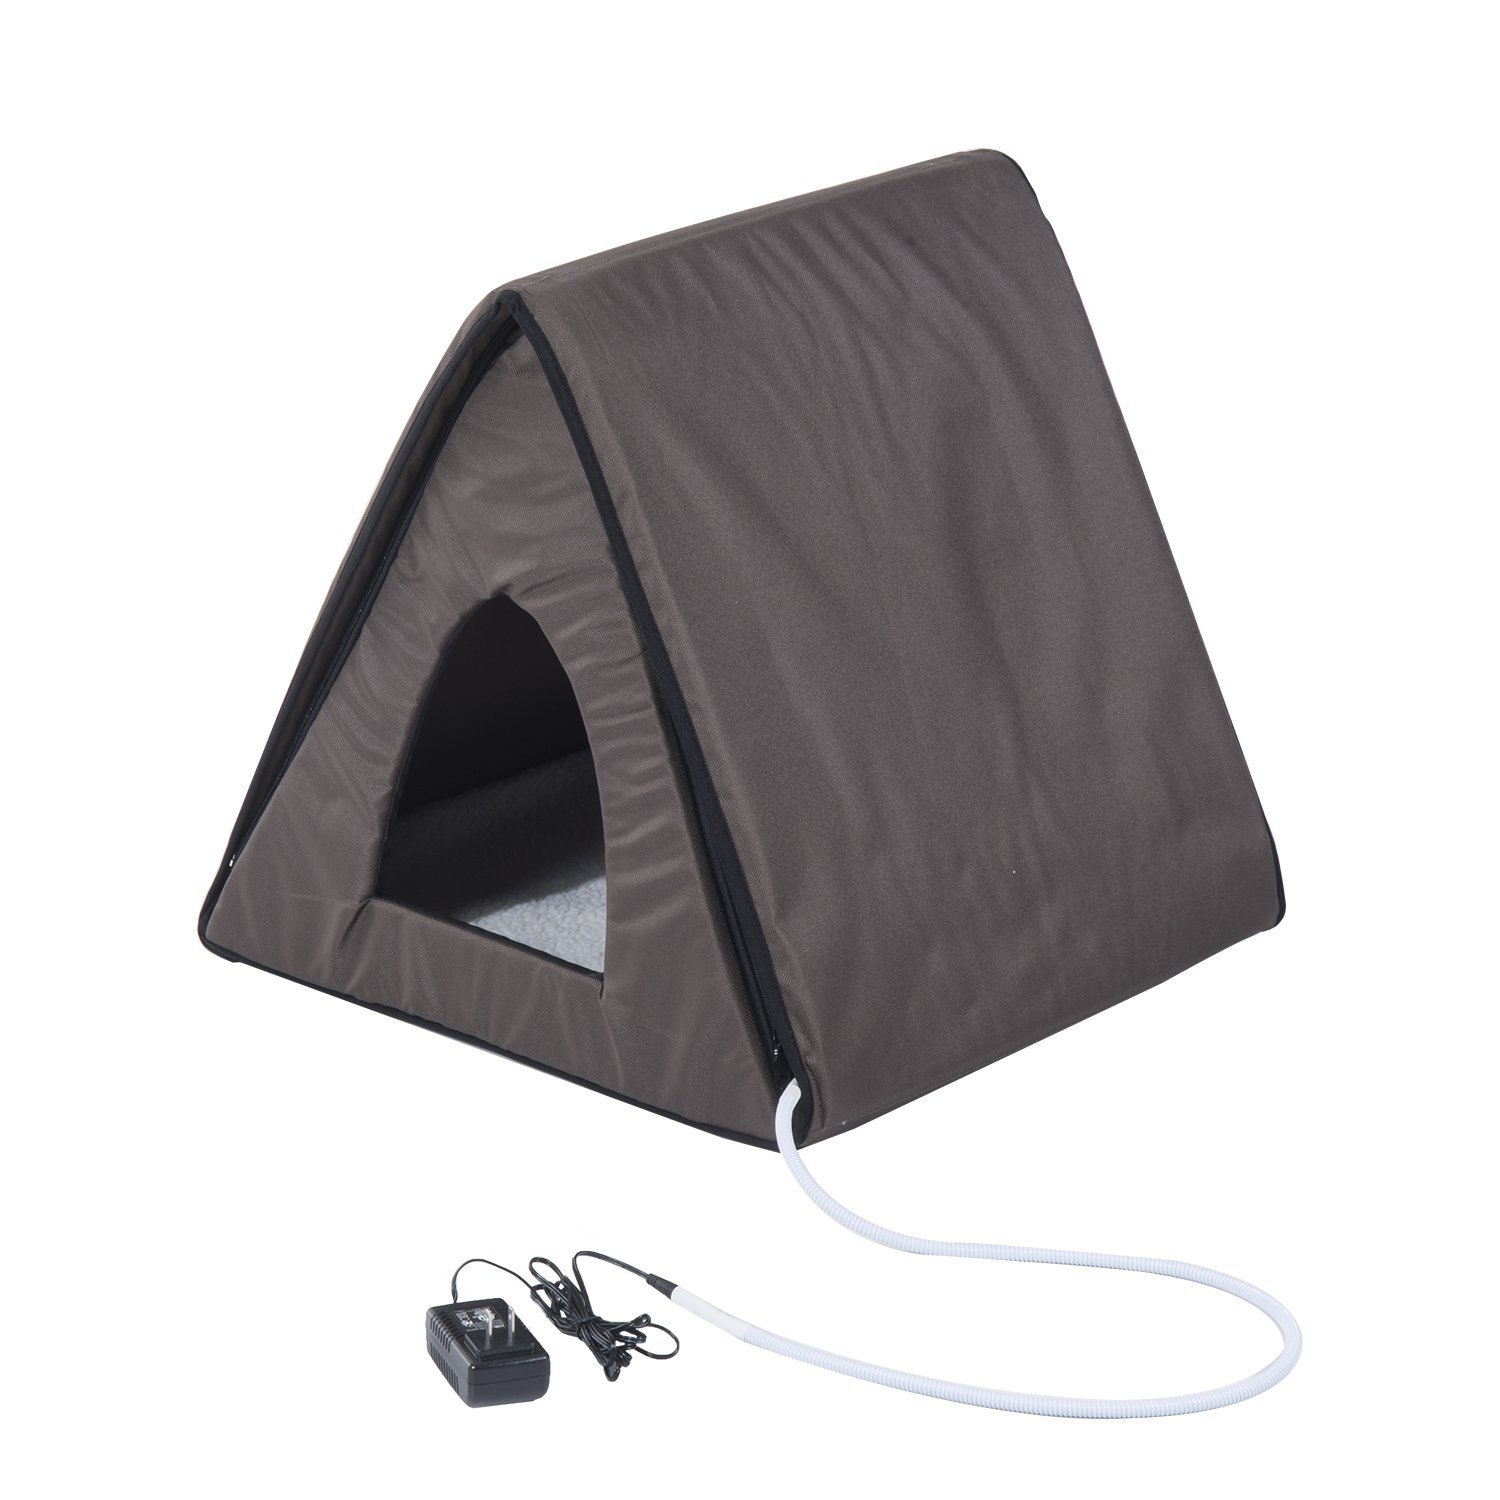 Best Tents For Cats To Play In